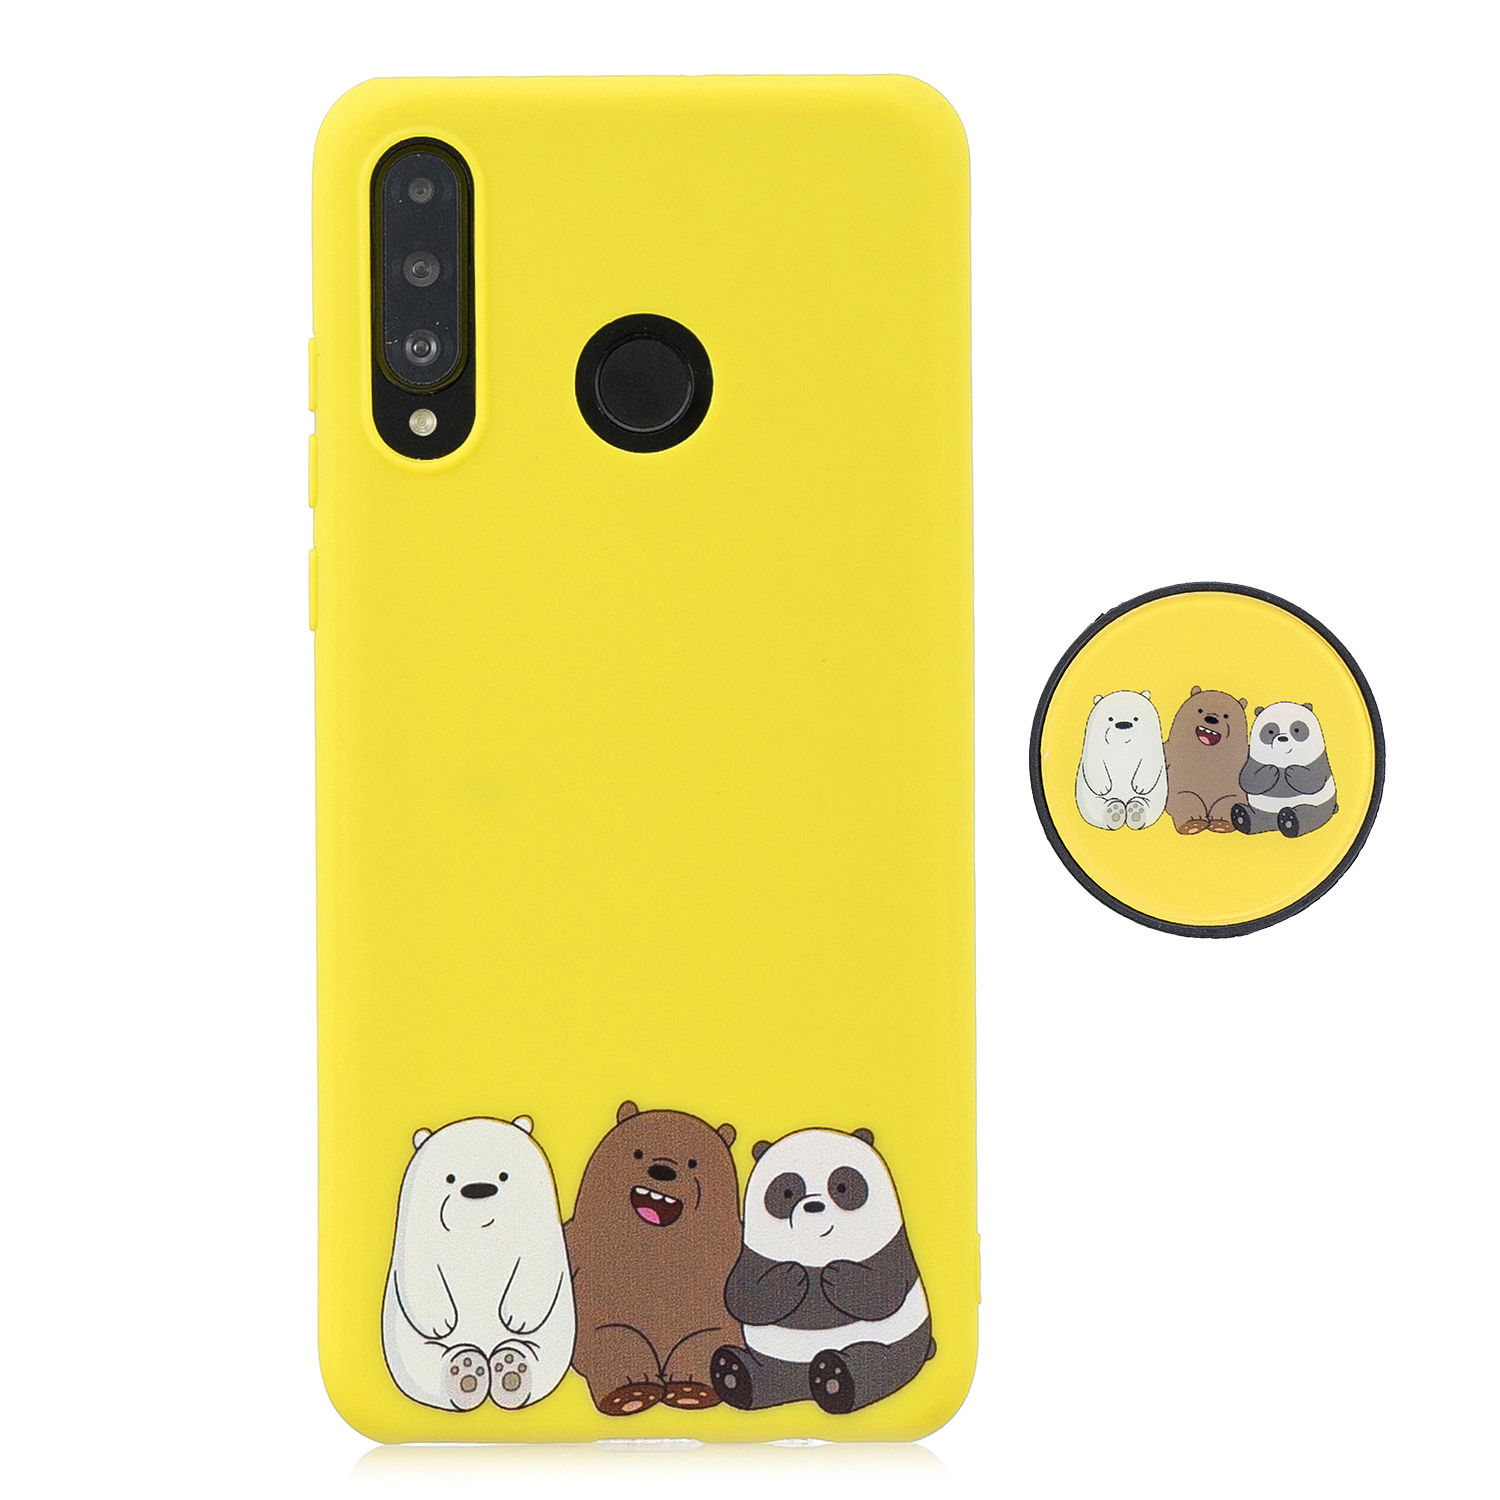 For HUAWEI P30 lite Cute Cartoon Phone Case Ultra Thin Lightweight Soft TPU Phone Case Pure Color Phone Cover with Matching Pattern Adjustable Bracket 7